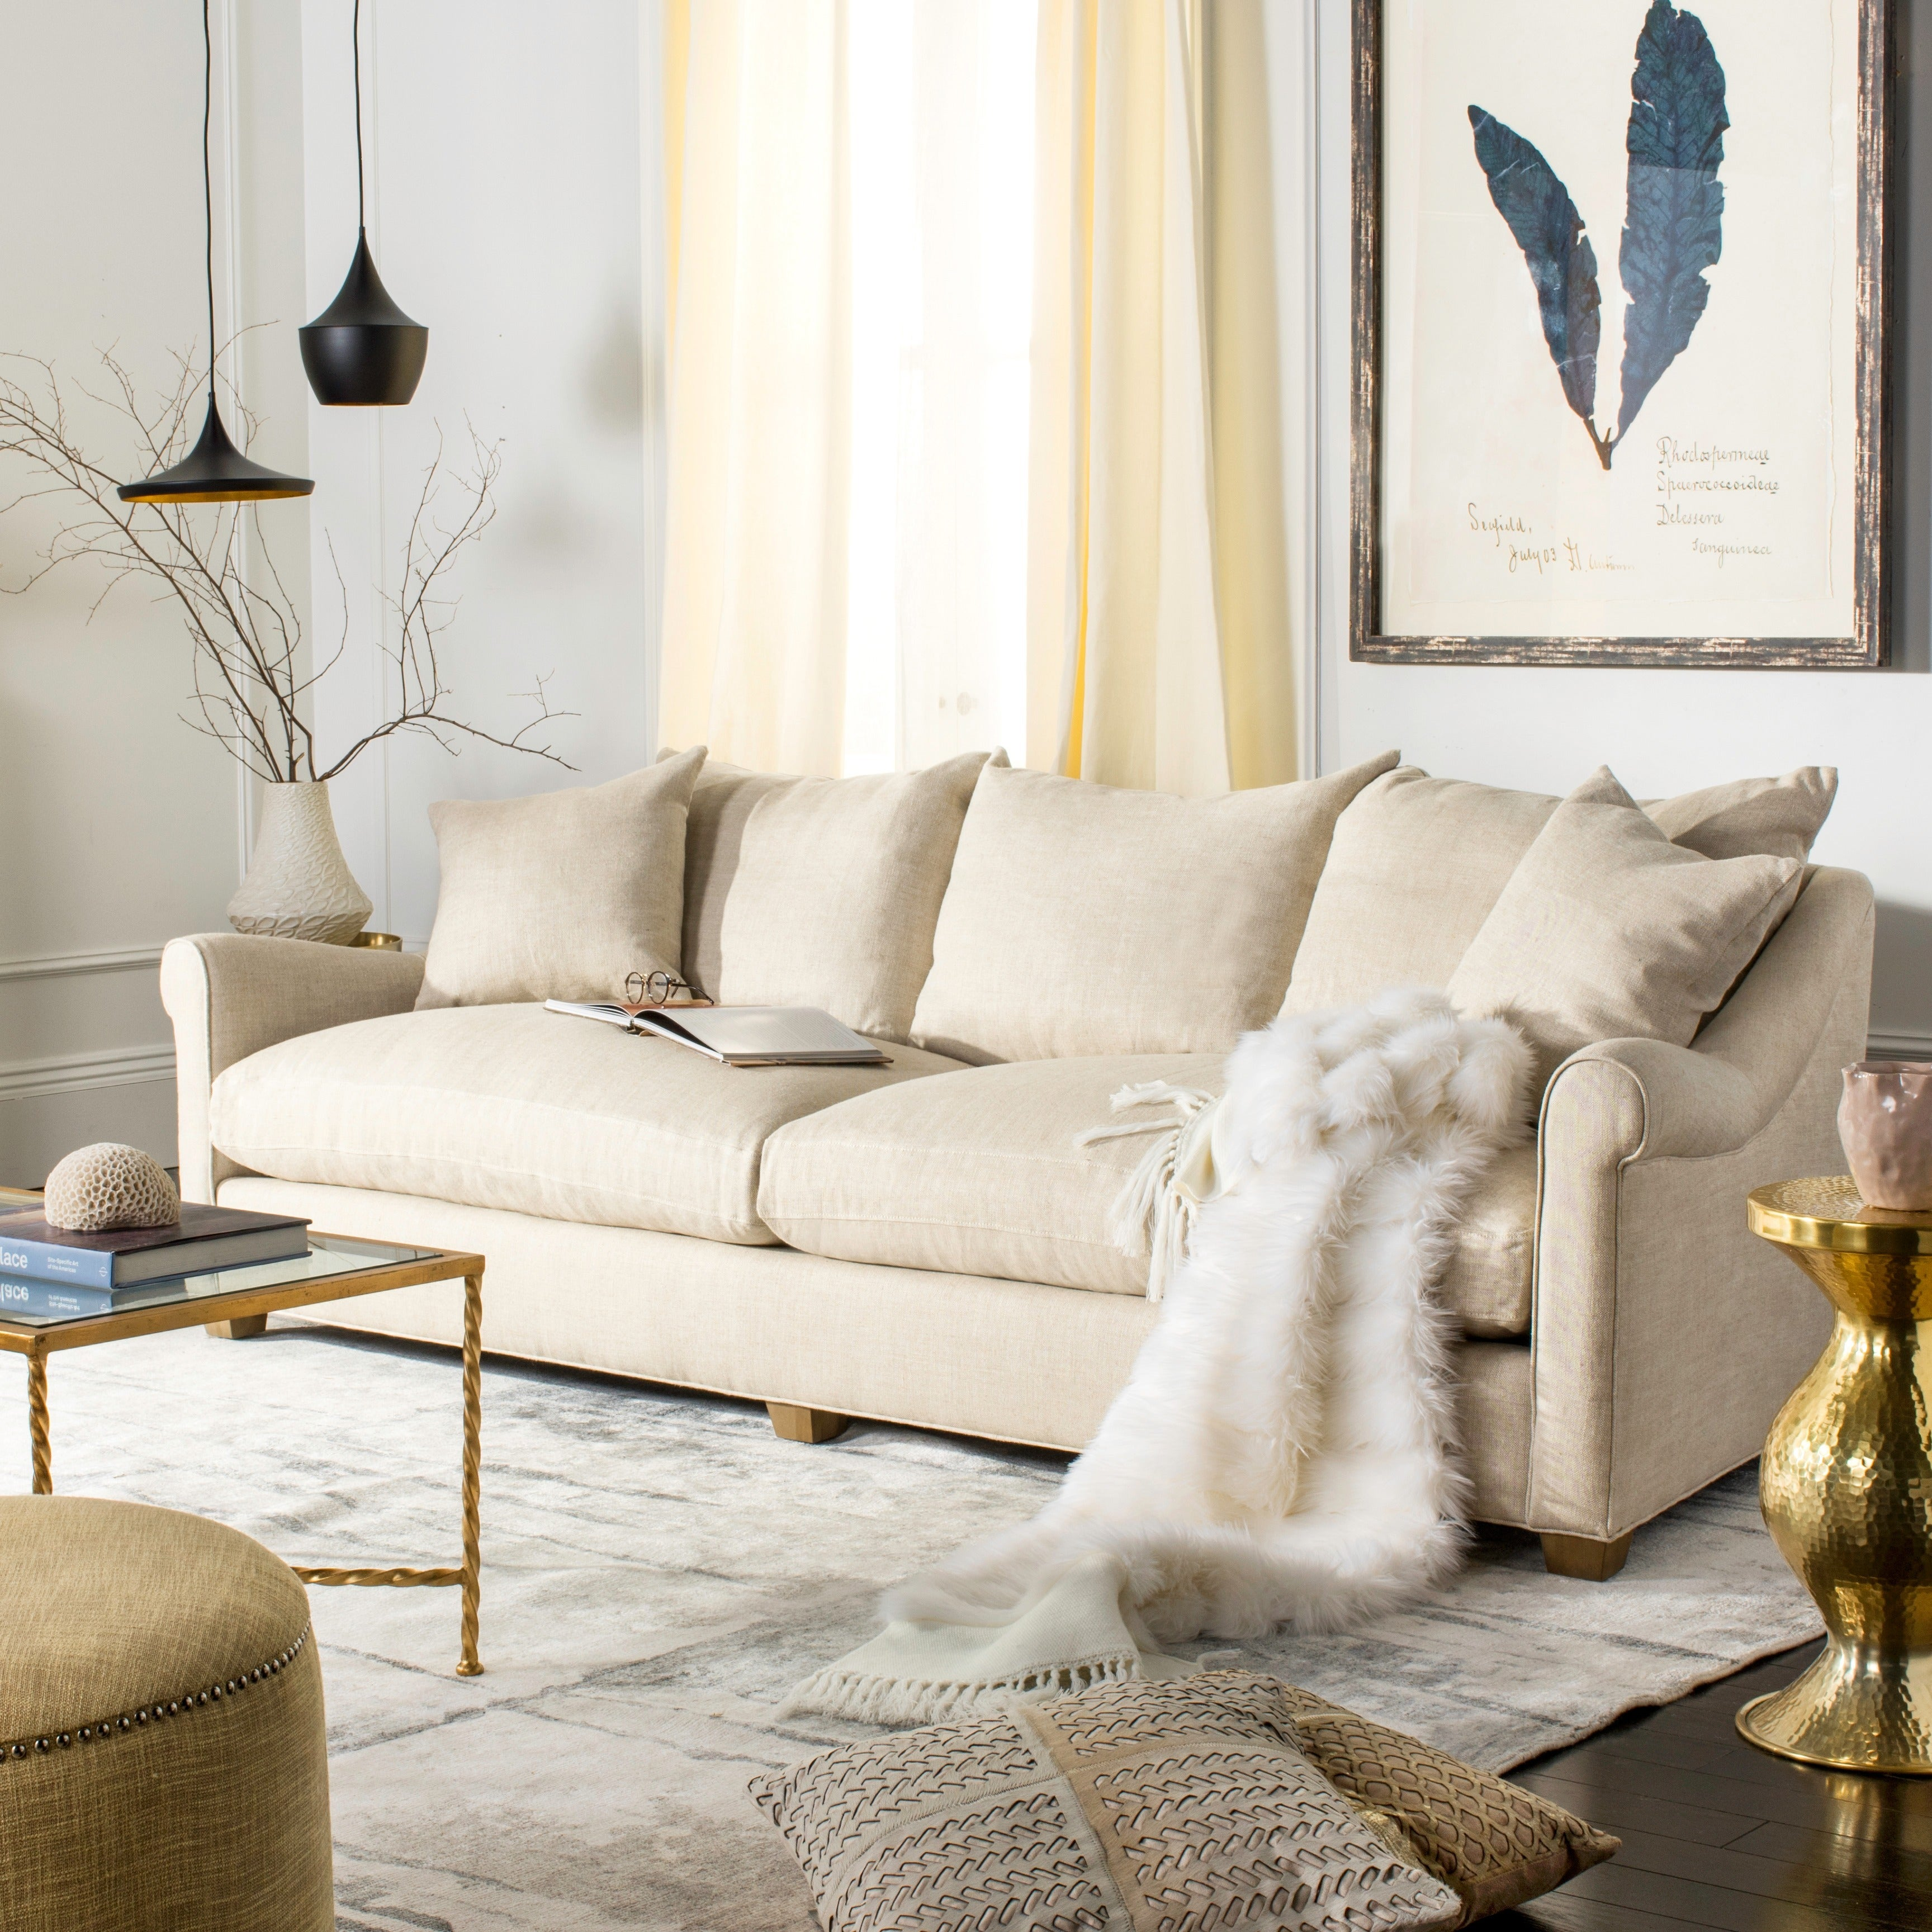 Safavieh couture high line collection frasier natural linen sofa